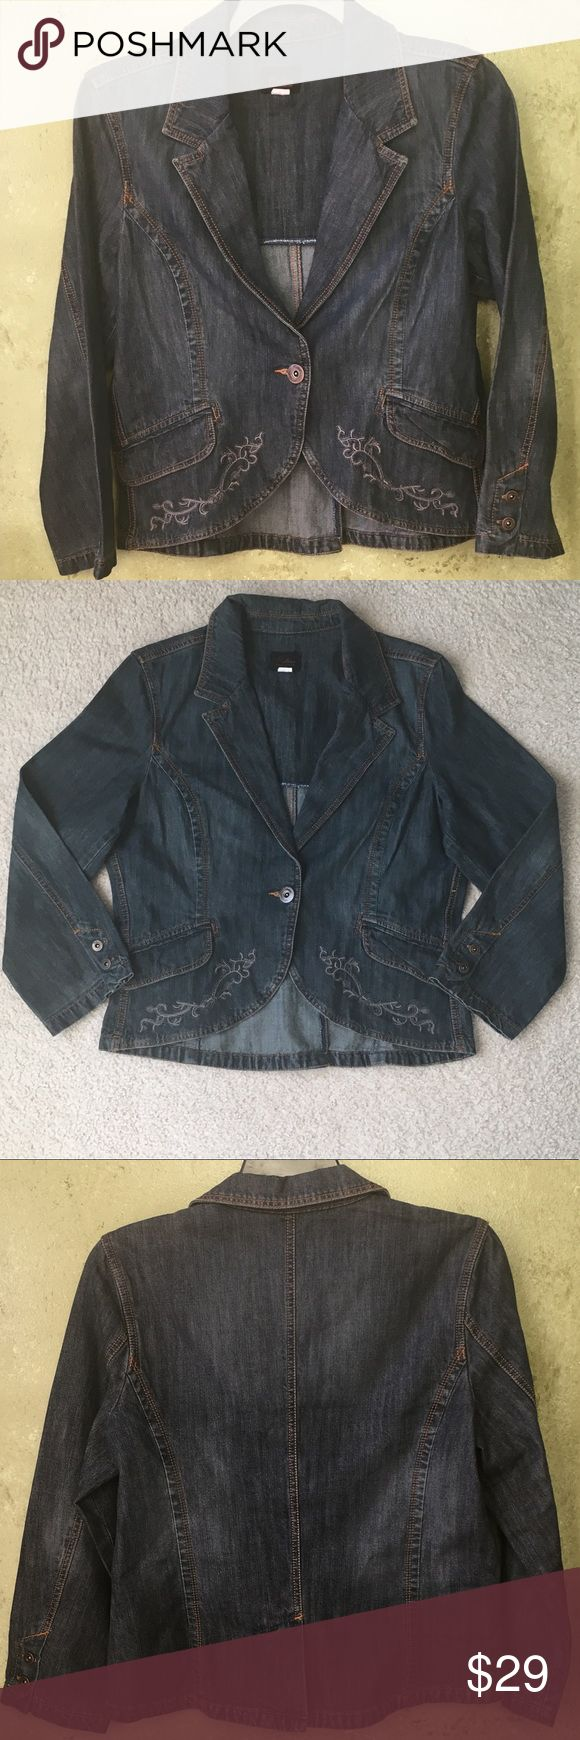 Riders Copper Collection Jean Jacket Riders Copper Collection Jean Jacket in a size Medium. Embroidered one button Lee jacket. Perfect addition to anyone's wardrobe ☺️. Used but in good condition. Riders by Lee Jackets & Coats Jean Jackets